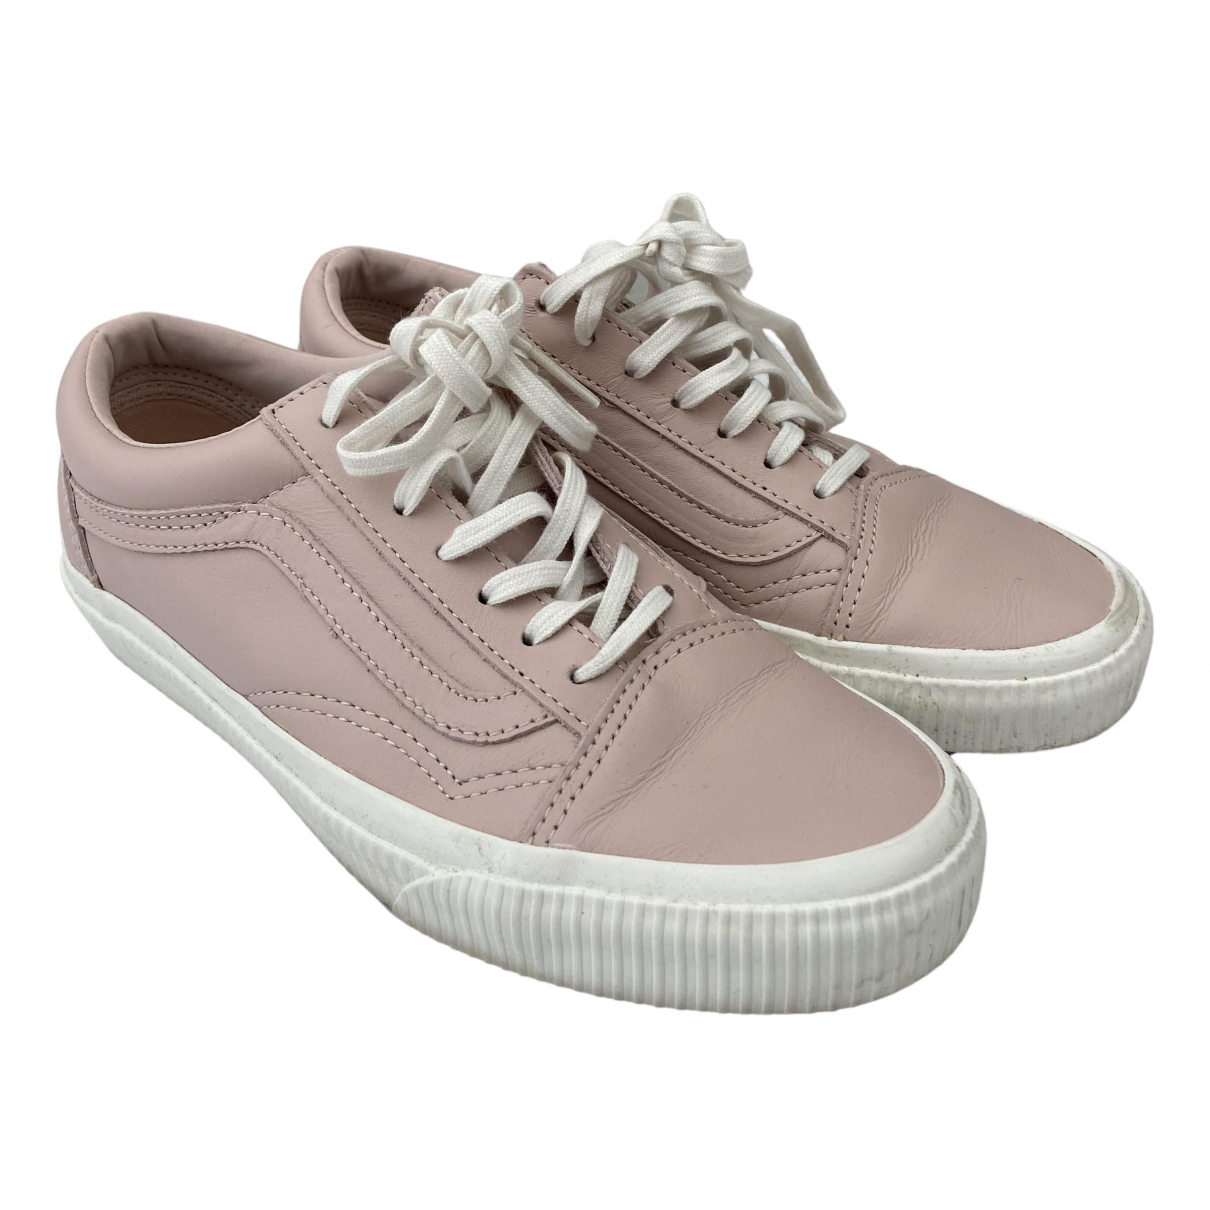 Vans N Pink Leather Trainers for Women 36.5 EU